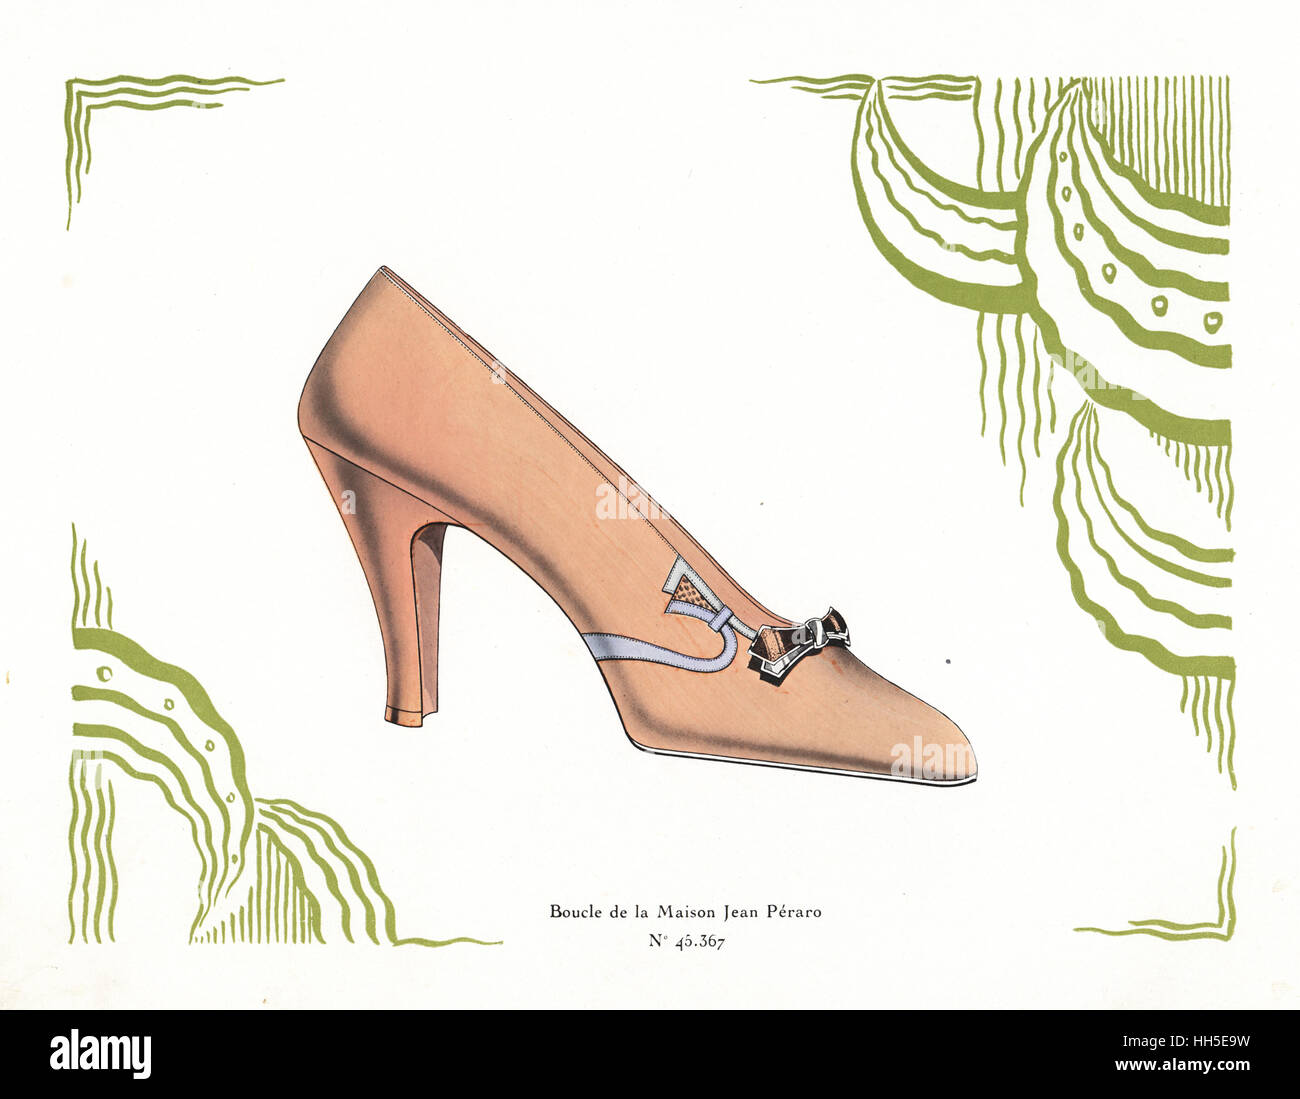 Woman's shoe design in salmon pink leather with buckle from the Maison Jean Peraro within abstract art deco - Stock Image